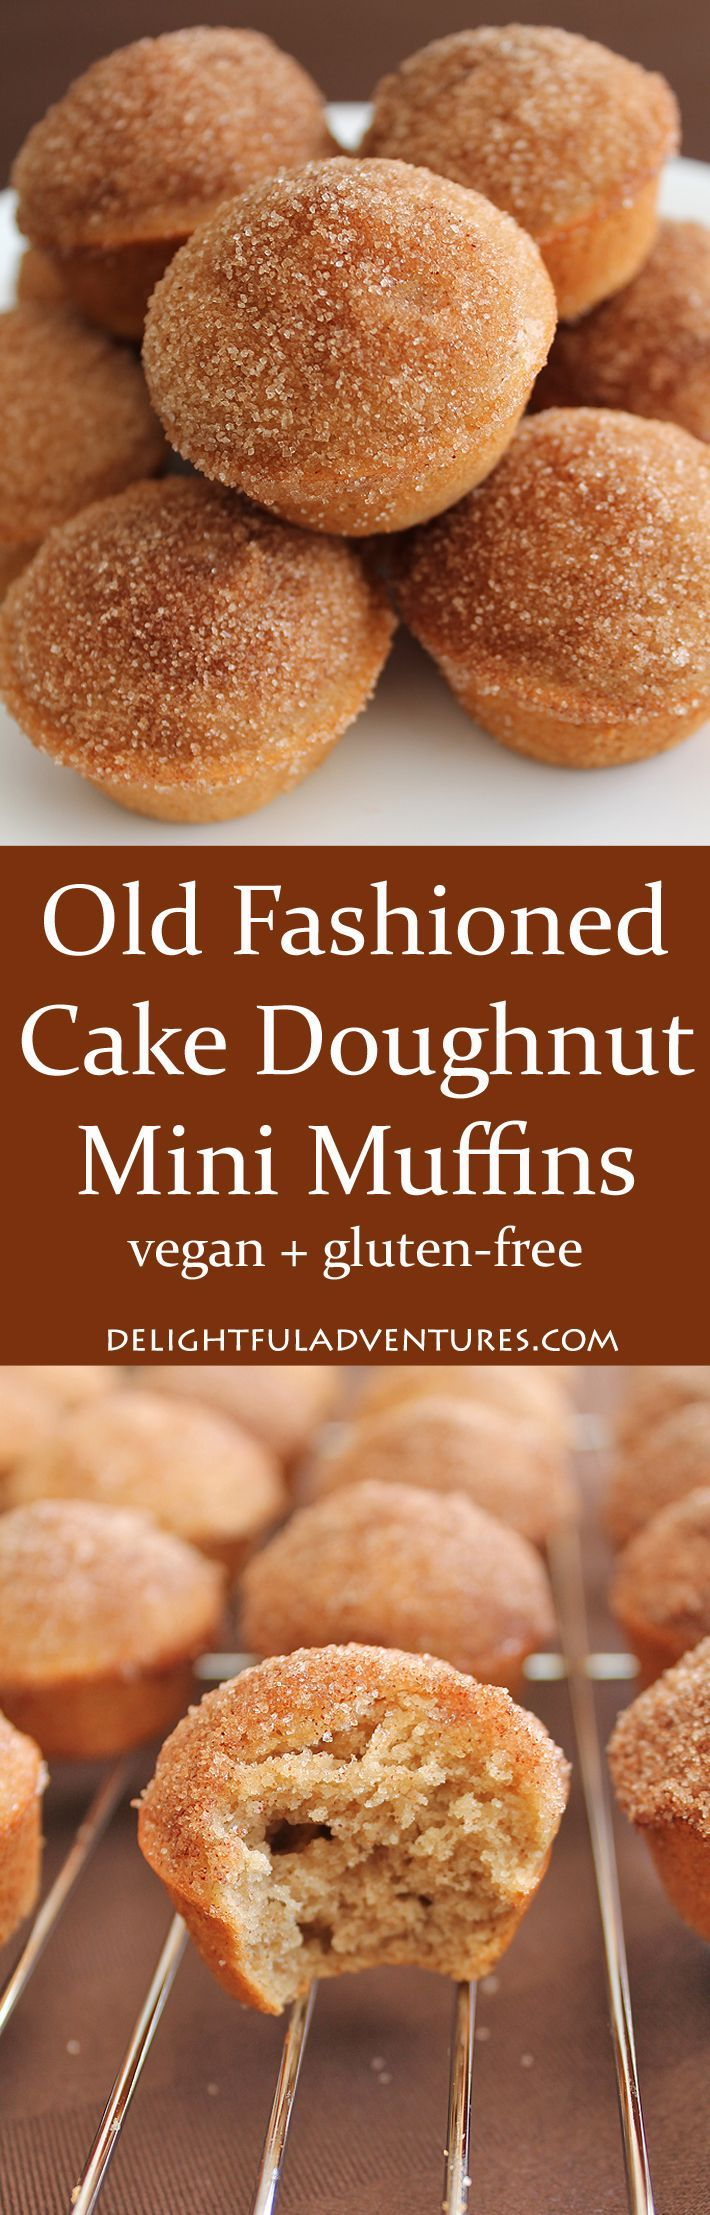 Old Fashioned Cake Doughnut Mini Muffins - Old Fashioned Cake Doughnut Mini Muffins  You're going to love these vegan gluten-free old fashioned cake doughnut mini muffins. They're perfectly spiced old fashioned cake doughnuts—in muffin form!